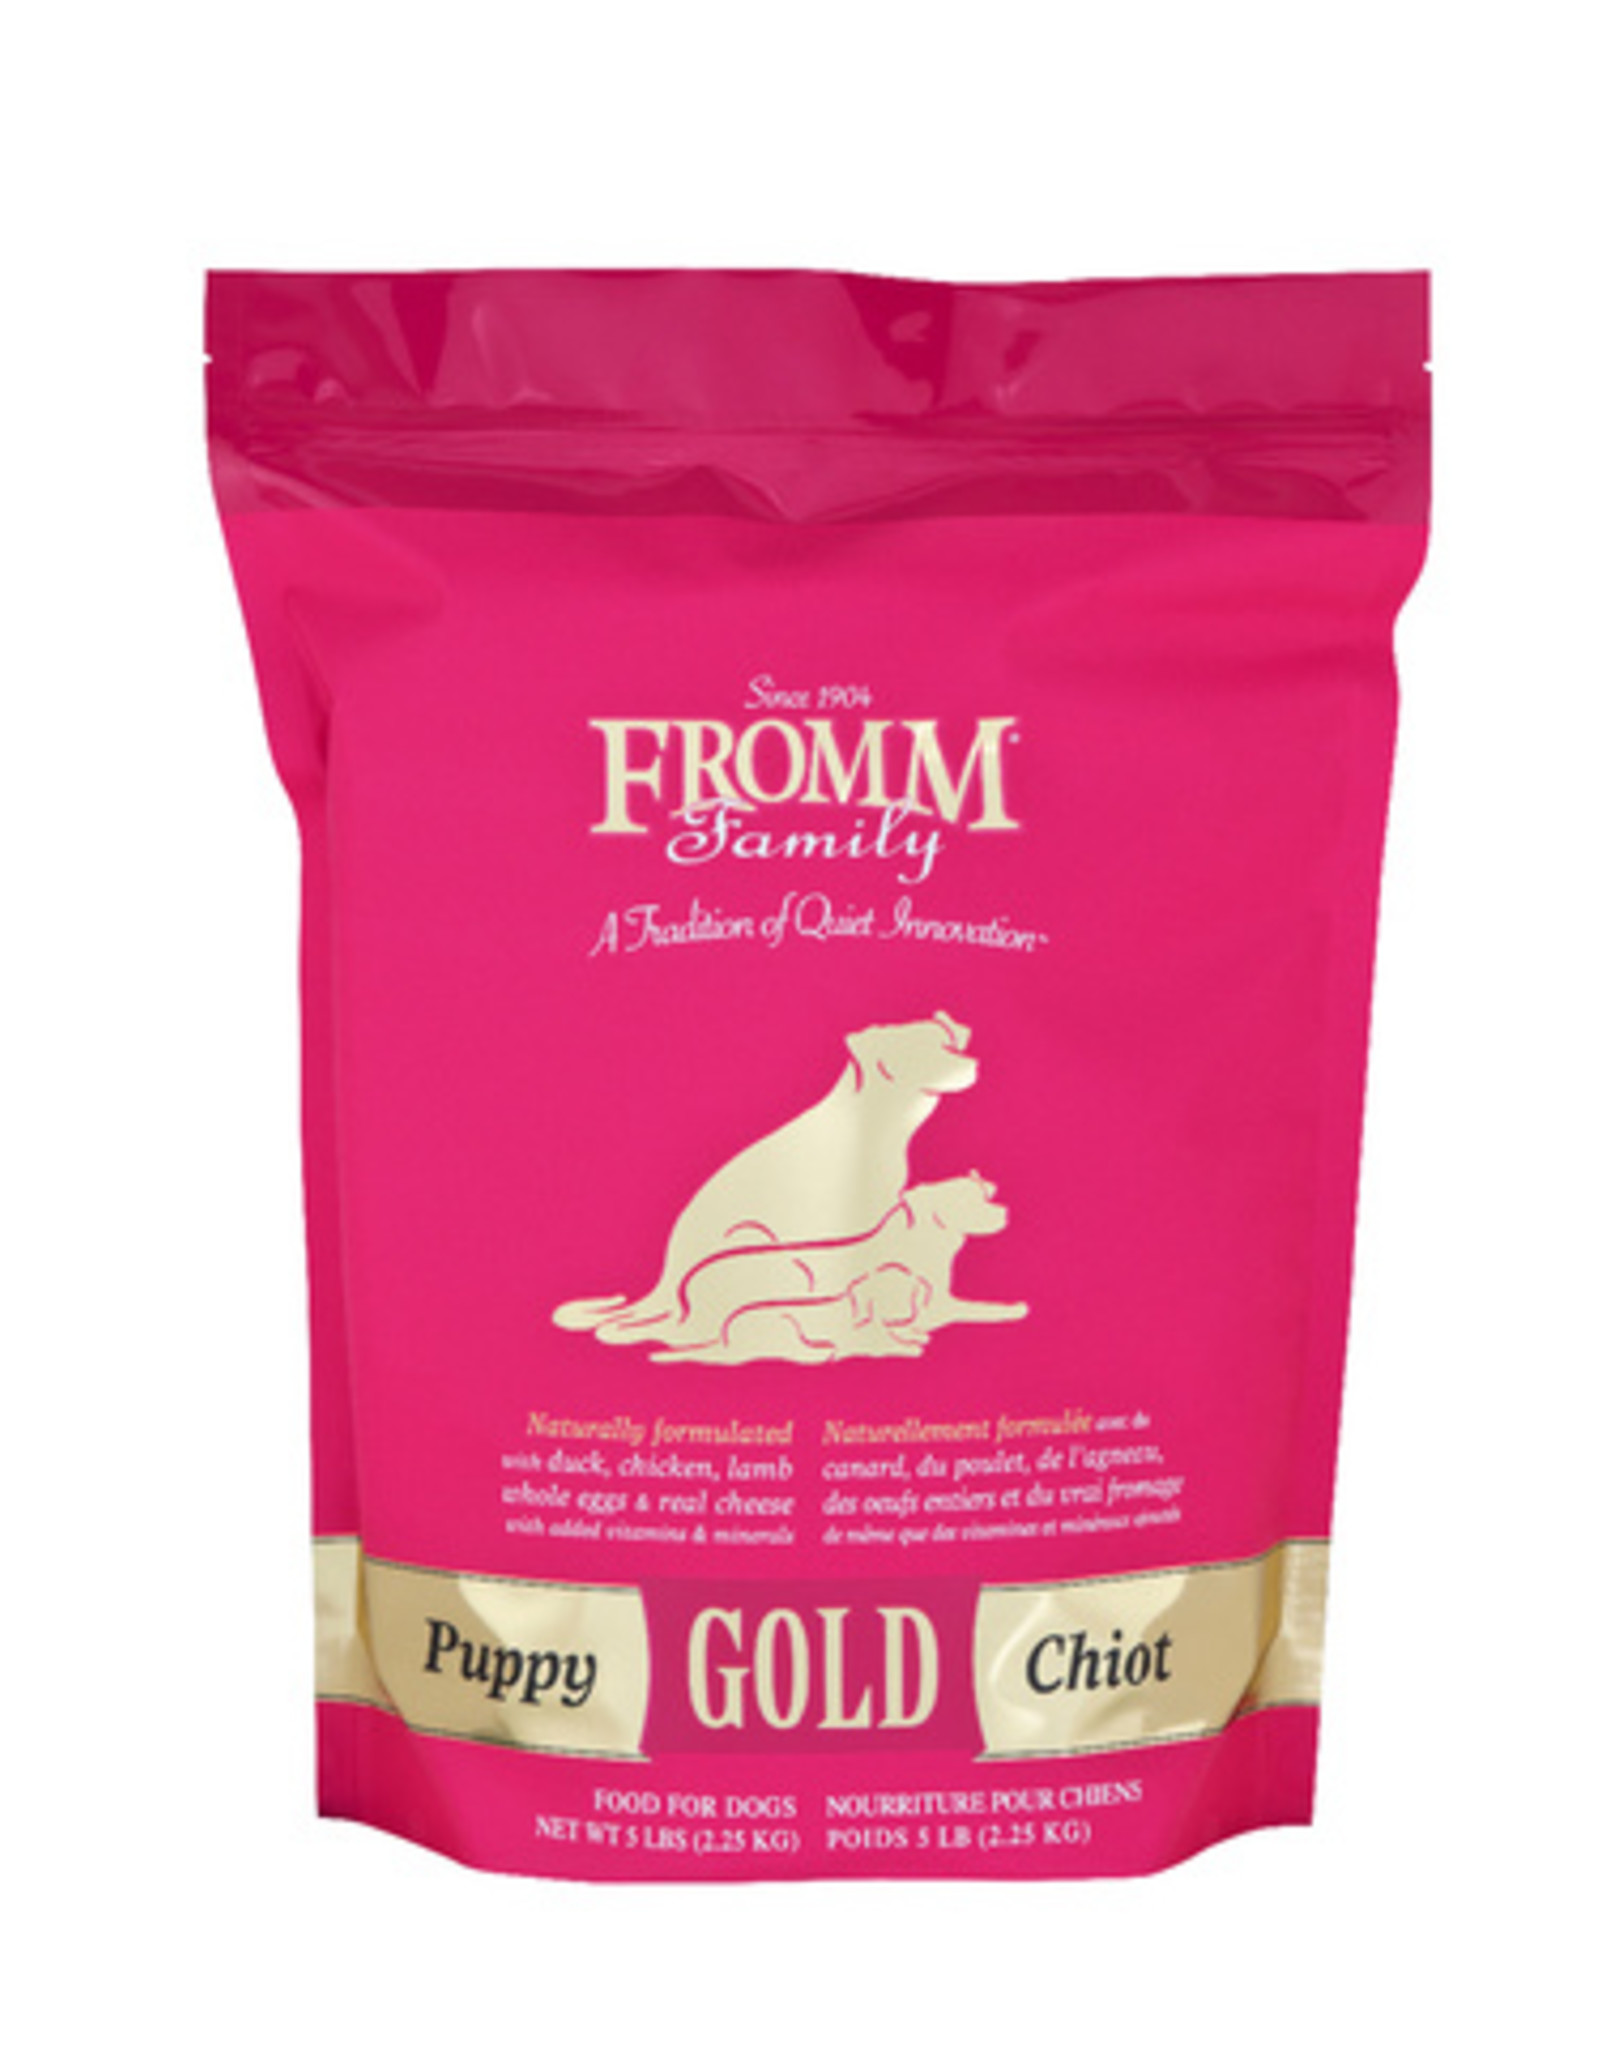 FROMM FAMILY FOODS LLC FROMM PUPPY GOLD, 5 LBS.